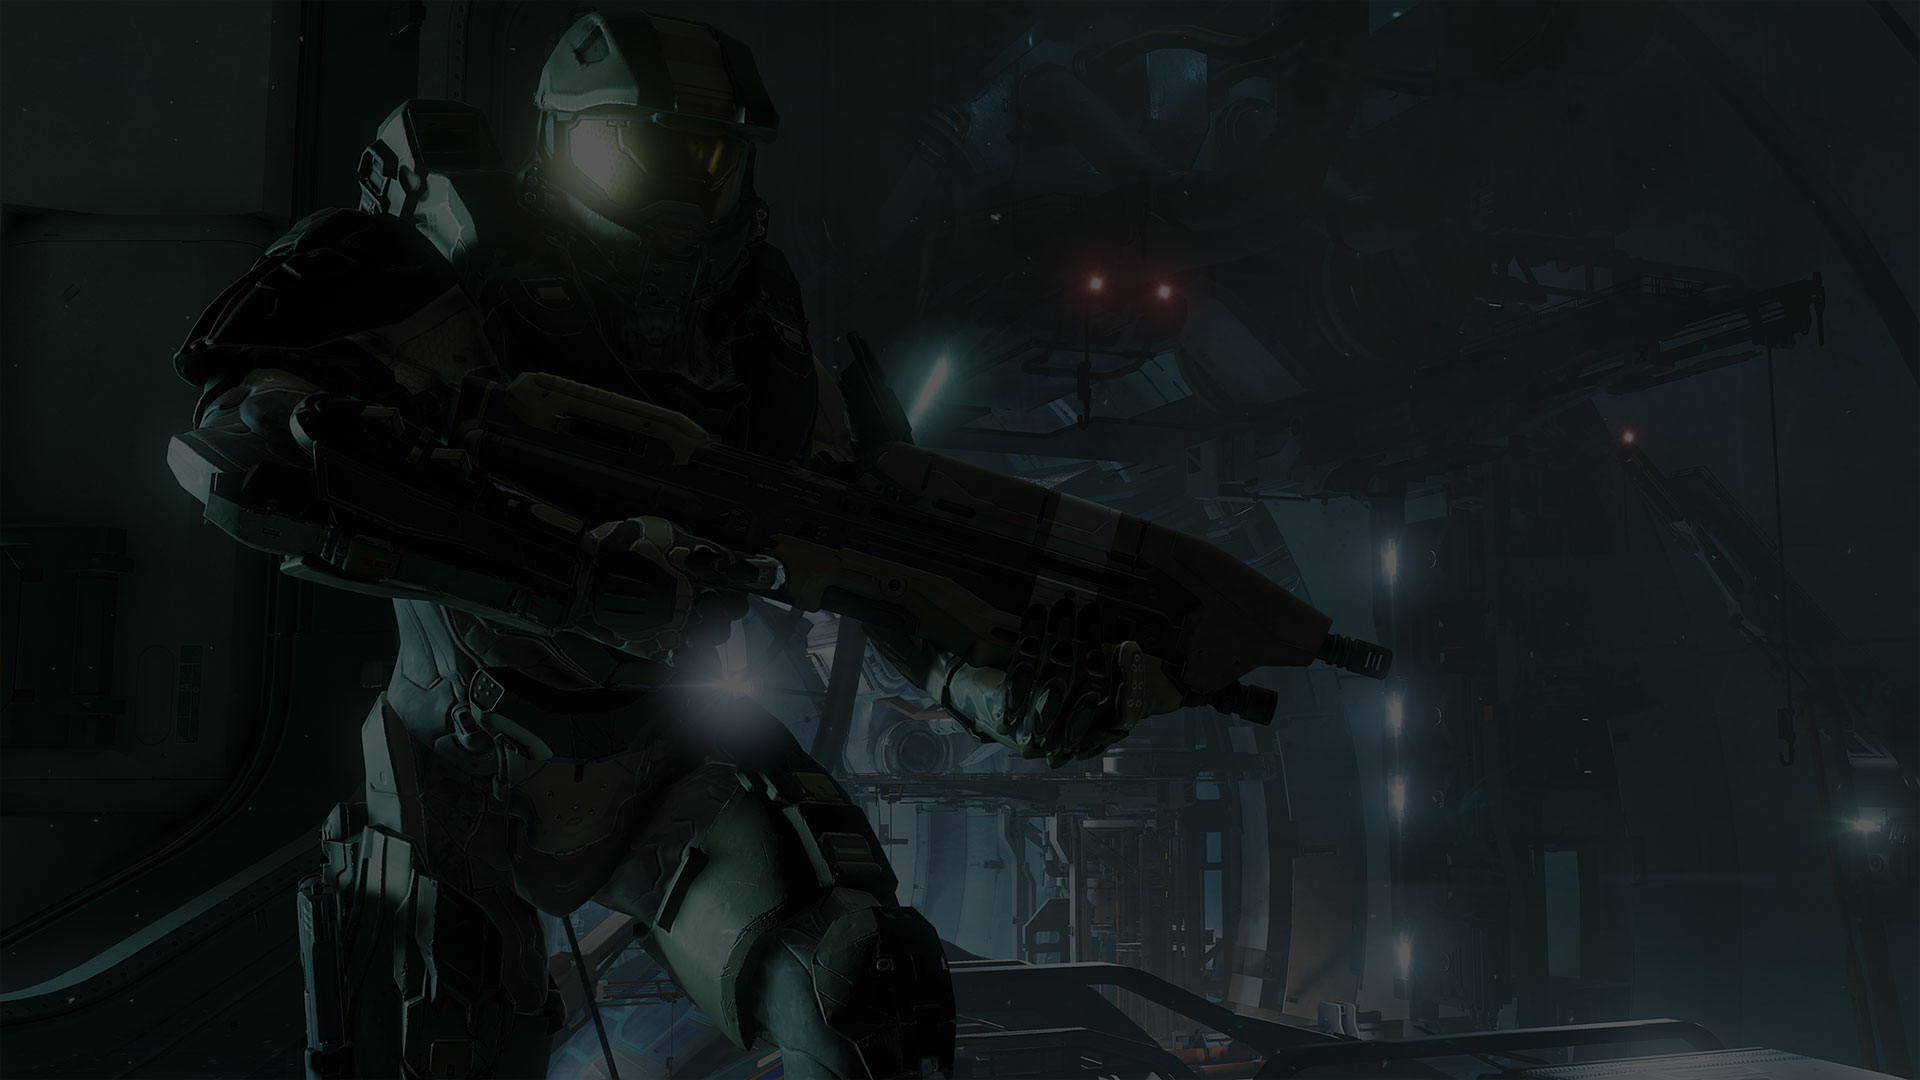 Halo Live Wallpaper For Pc Posted By Sarah Walker